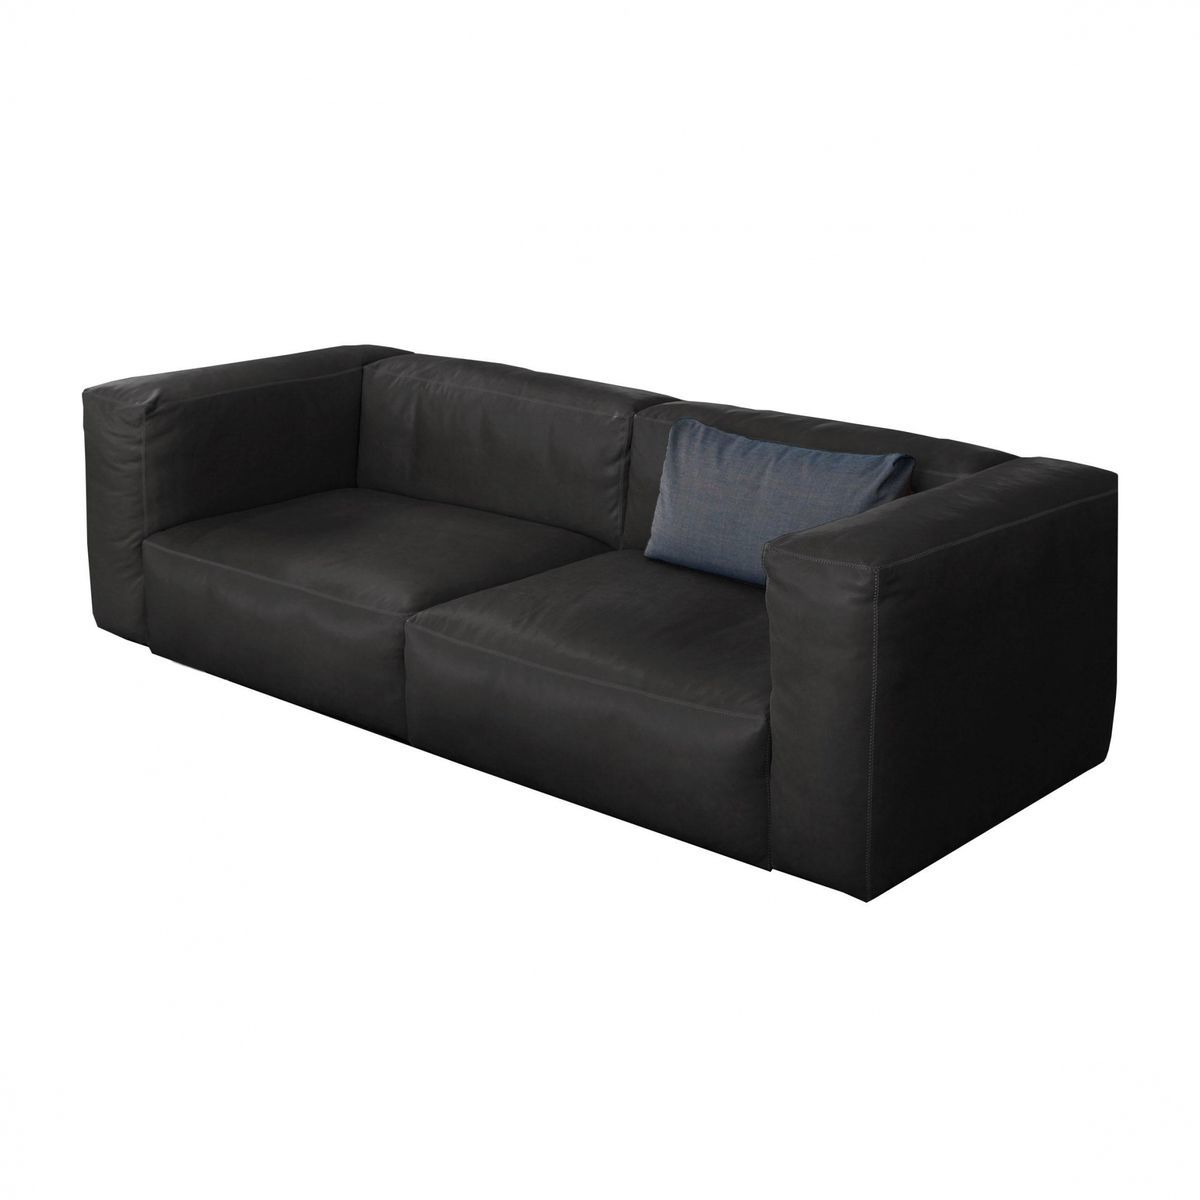 sofa with legs or without akhtar furniture wooden mags soft 2 5 seater leather hay ambientedirect